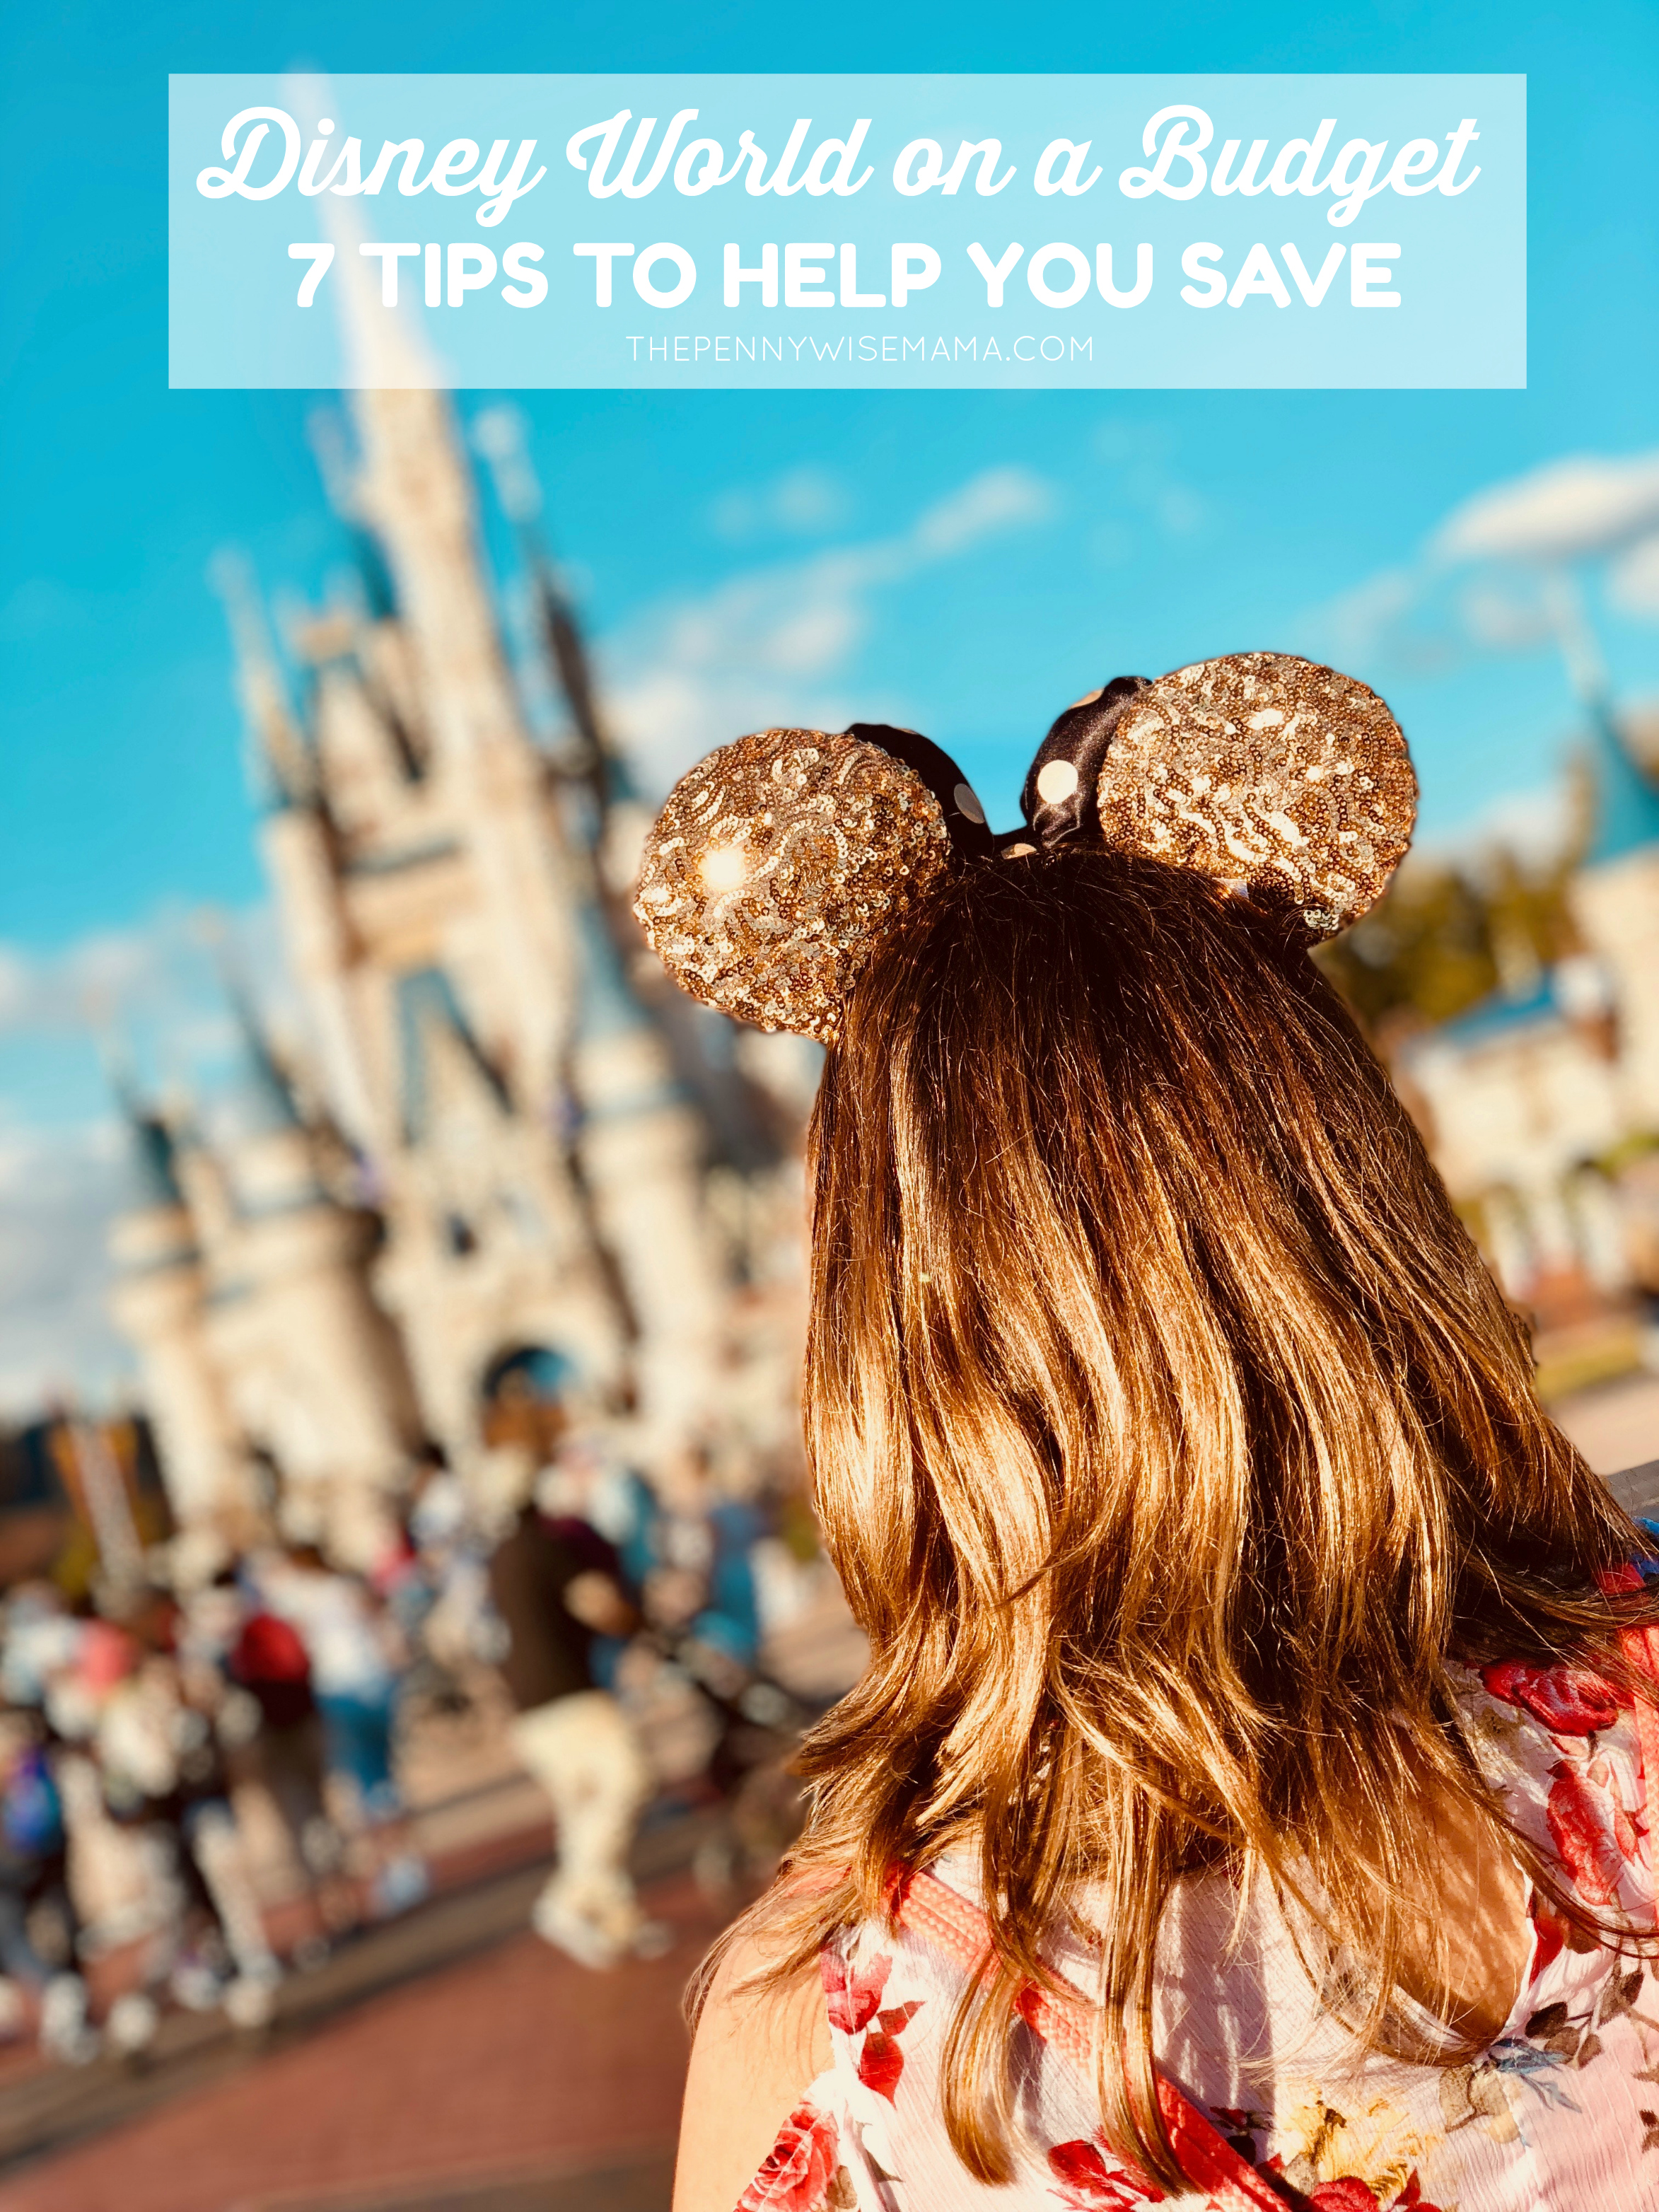 Disney World on a Budget – 7 Tips to Help You Save